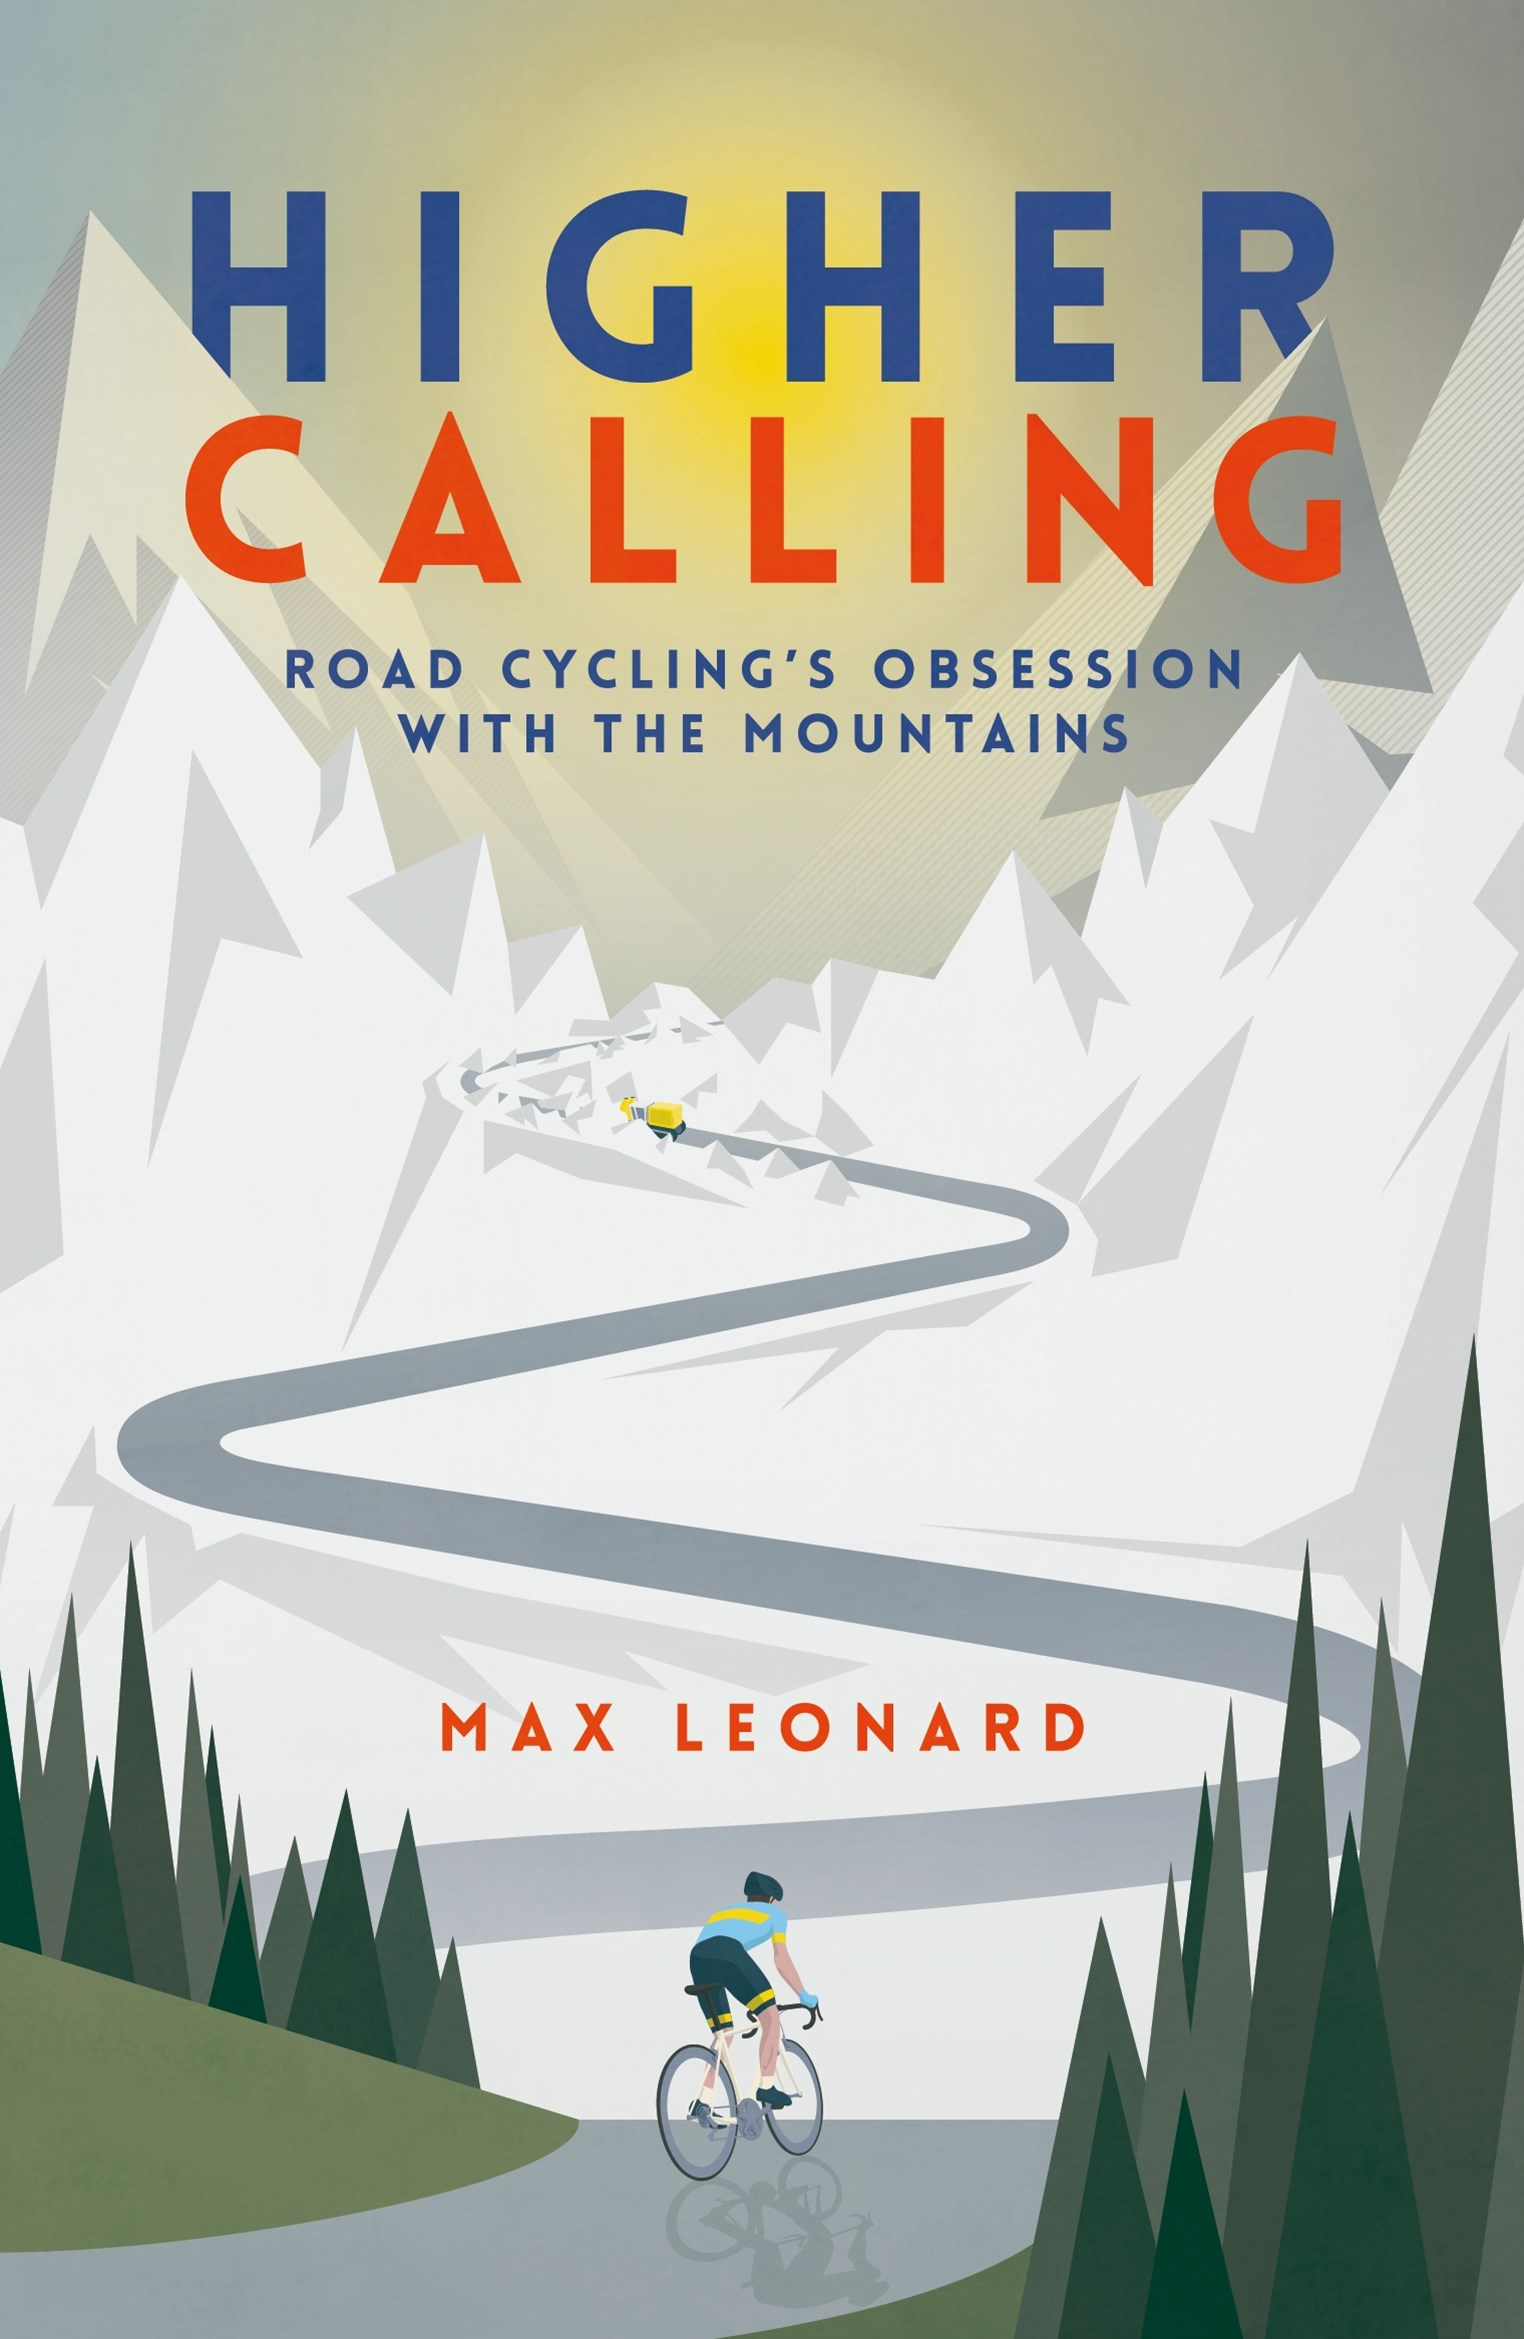 Higher Calling: Road Cycling's Obsession with the Mountains